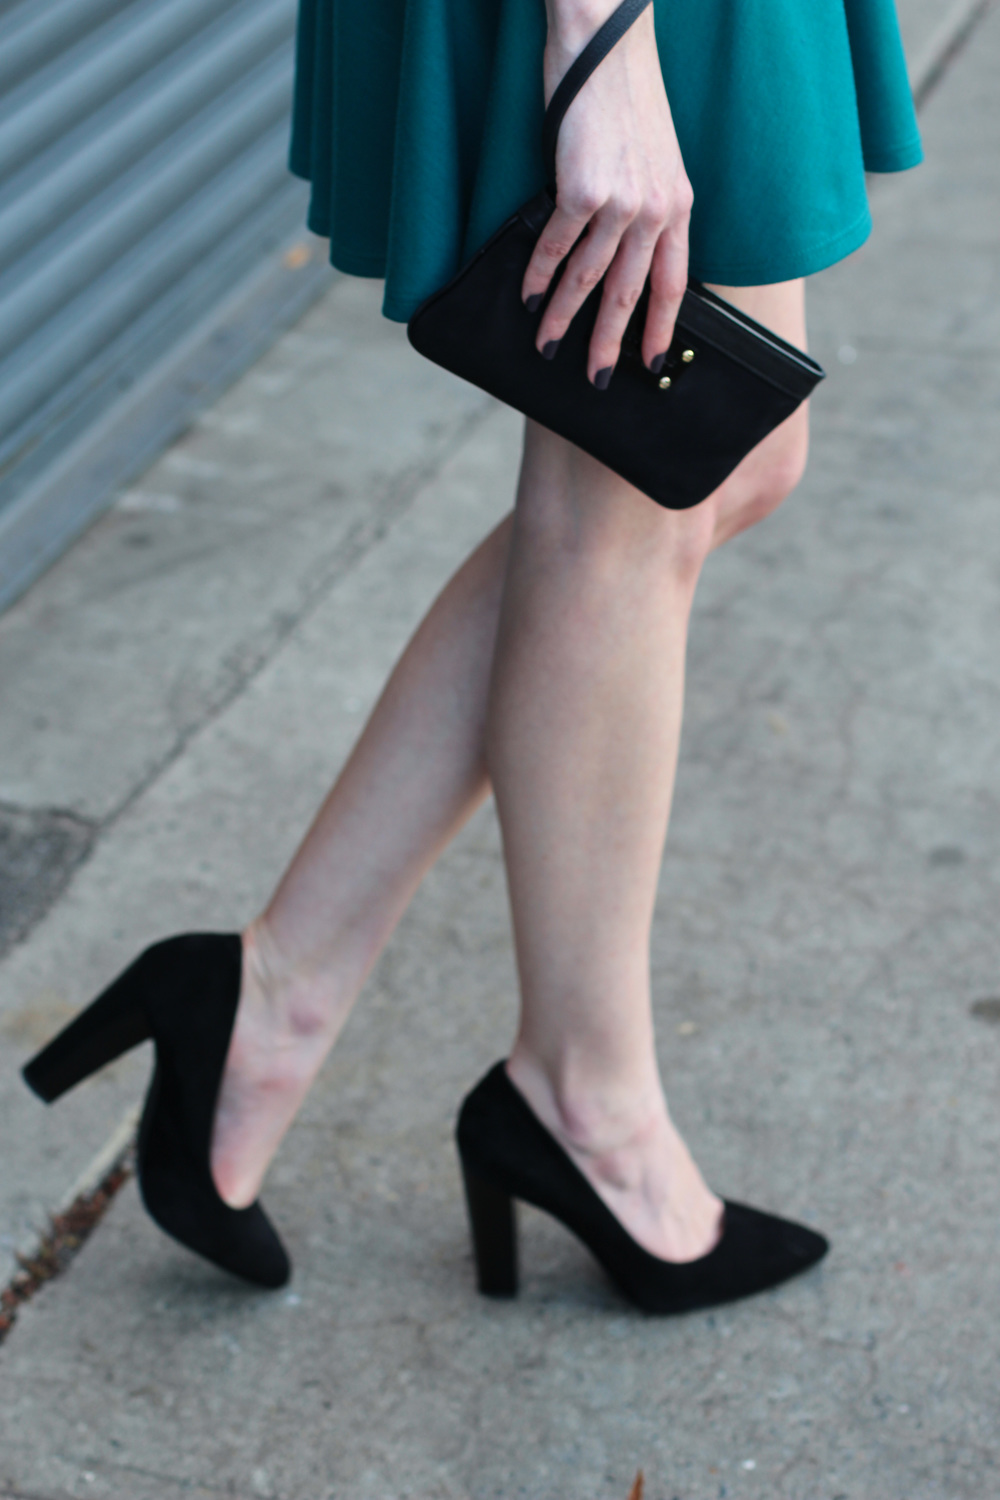 Teal cutout skater knit dress, BCBG pointed toe suede chunky heel black pumps, black Kate Spade wristlet, Clinique Black Honey almost lipstick, braided bun, Essie smokin' hot nail polish